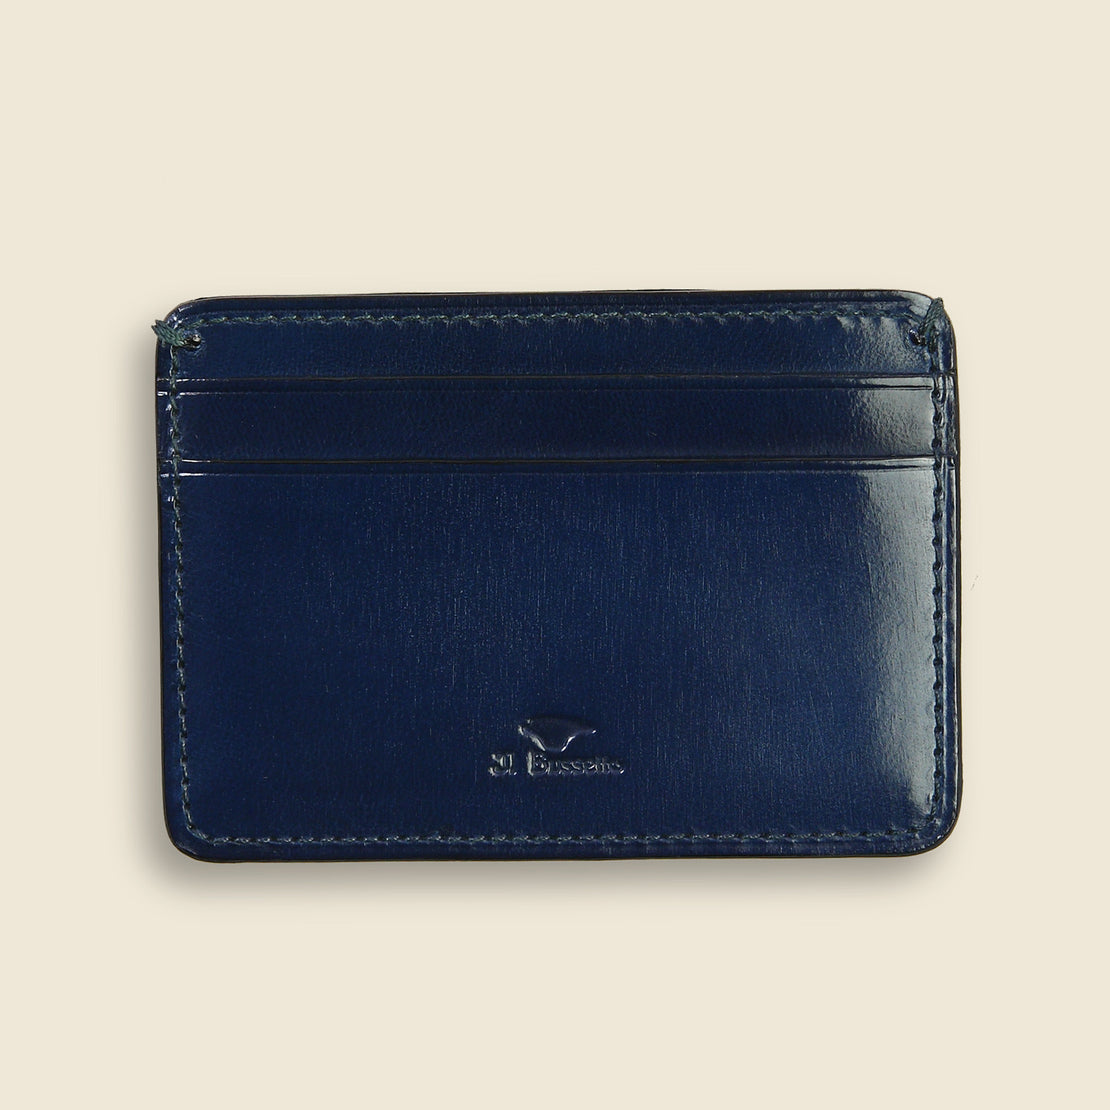 Il Bussetto Credit Card Case - Navy